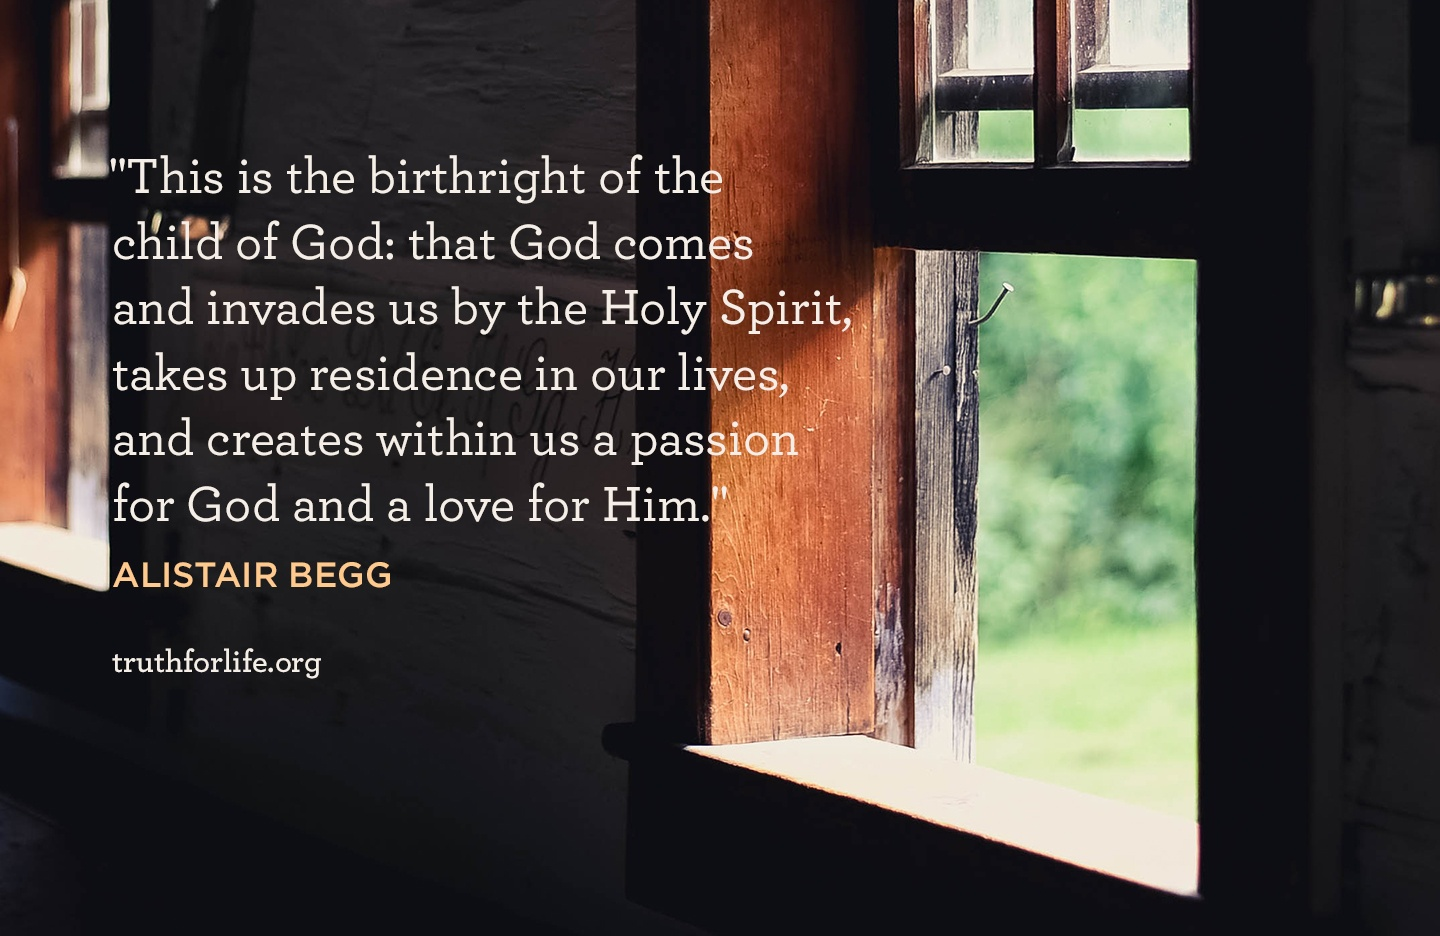 This is the birthright of the child of God: that God comes and invades us by the Holy Spirit, takes up residence in our lives, and creates within us a passion for God and a love for Him. - Alistair Begg